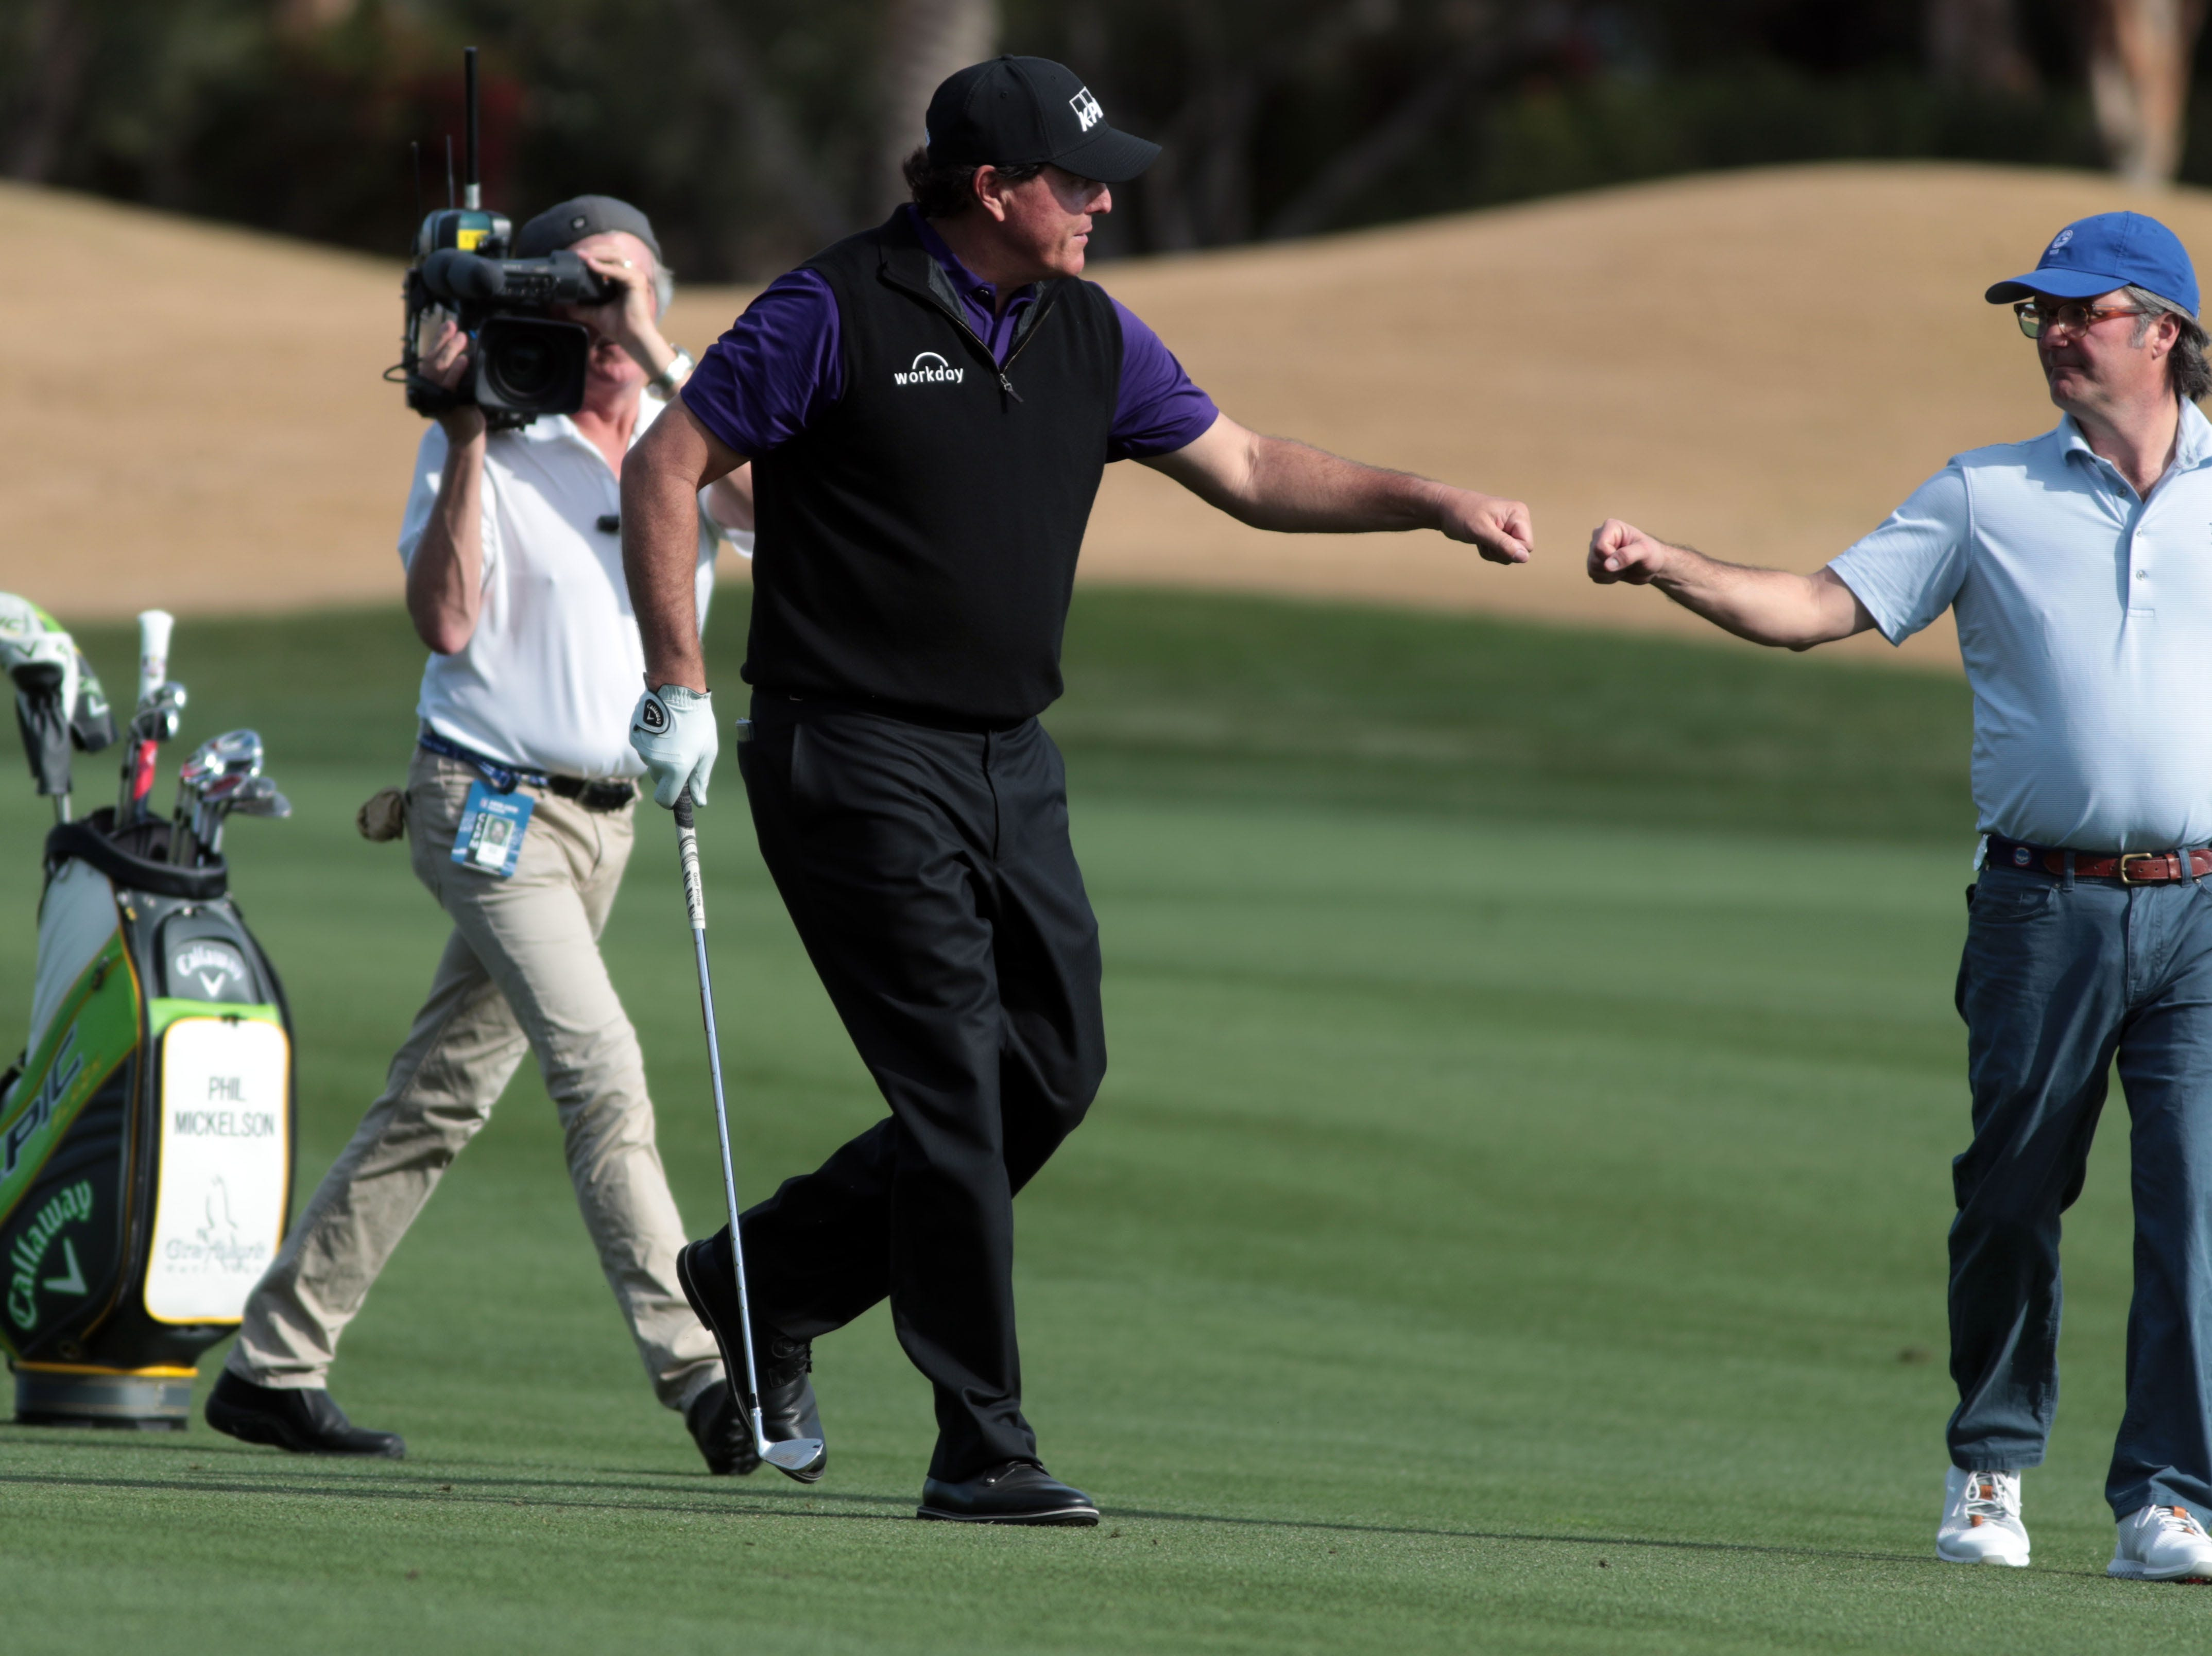 Phil Mickelson, after hitting his approach shot on 9, fist bumps Andy Blackburn on the Nicklaus Tournament Course at PGA West in La Quinta during the 2nd round of the Desert Classic on Friday, January 18, 2019.